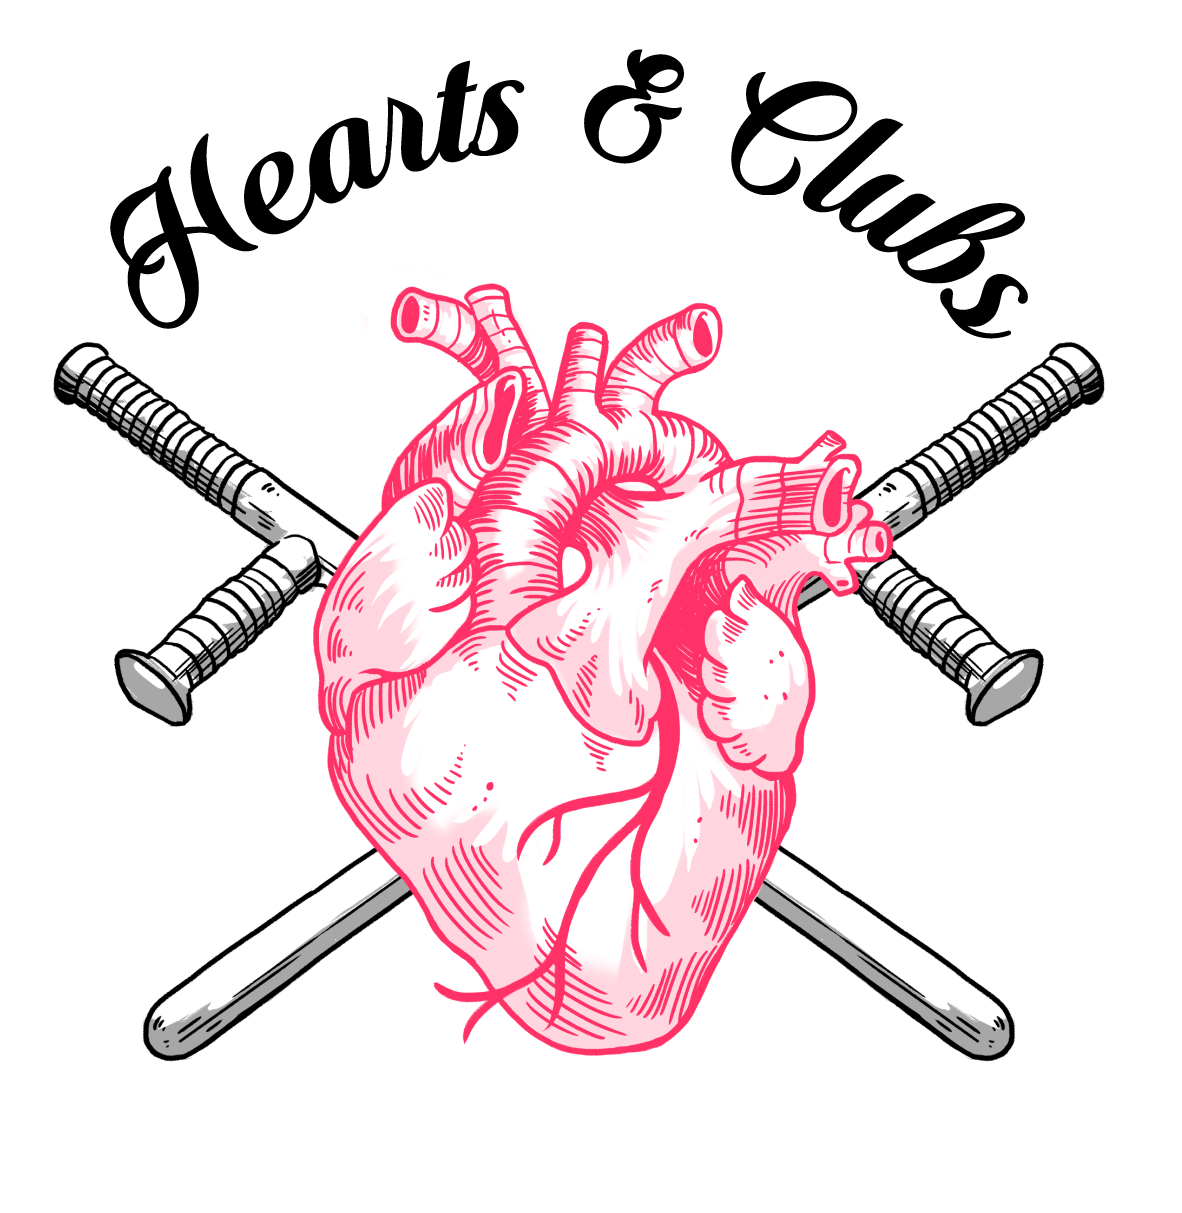 Hearts and clubs logo